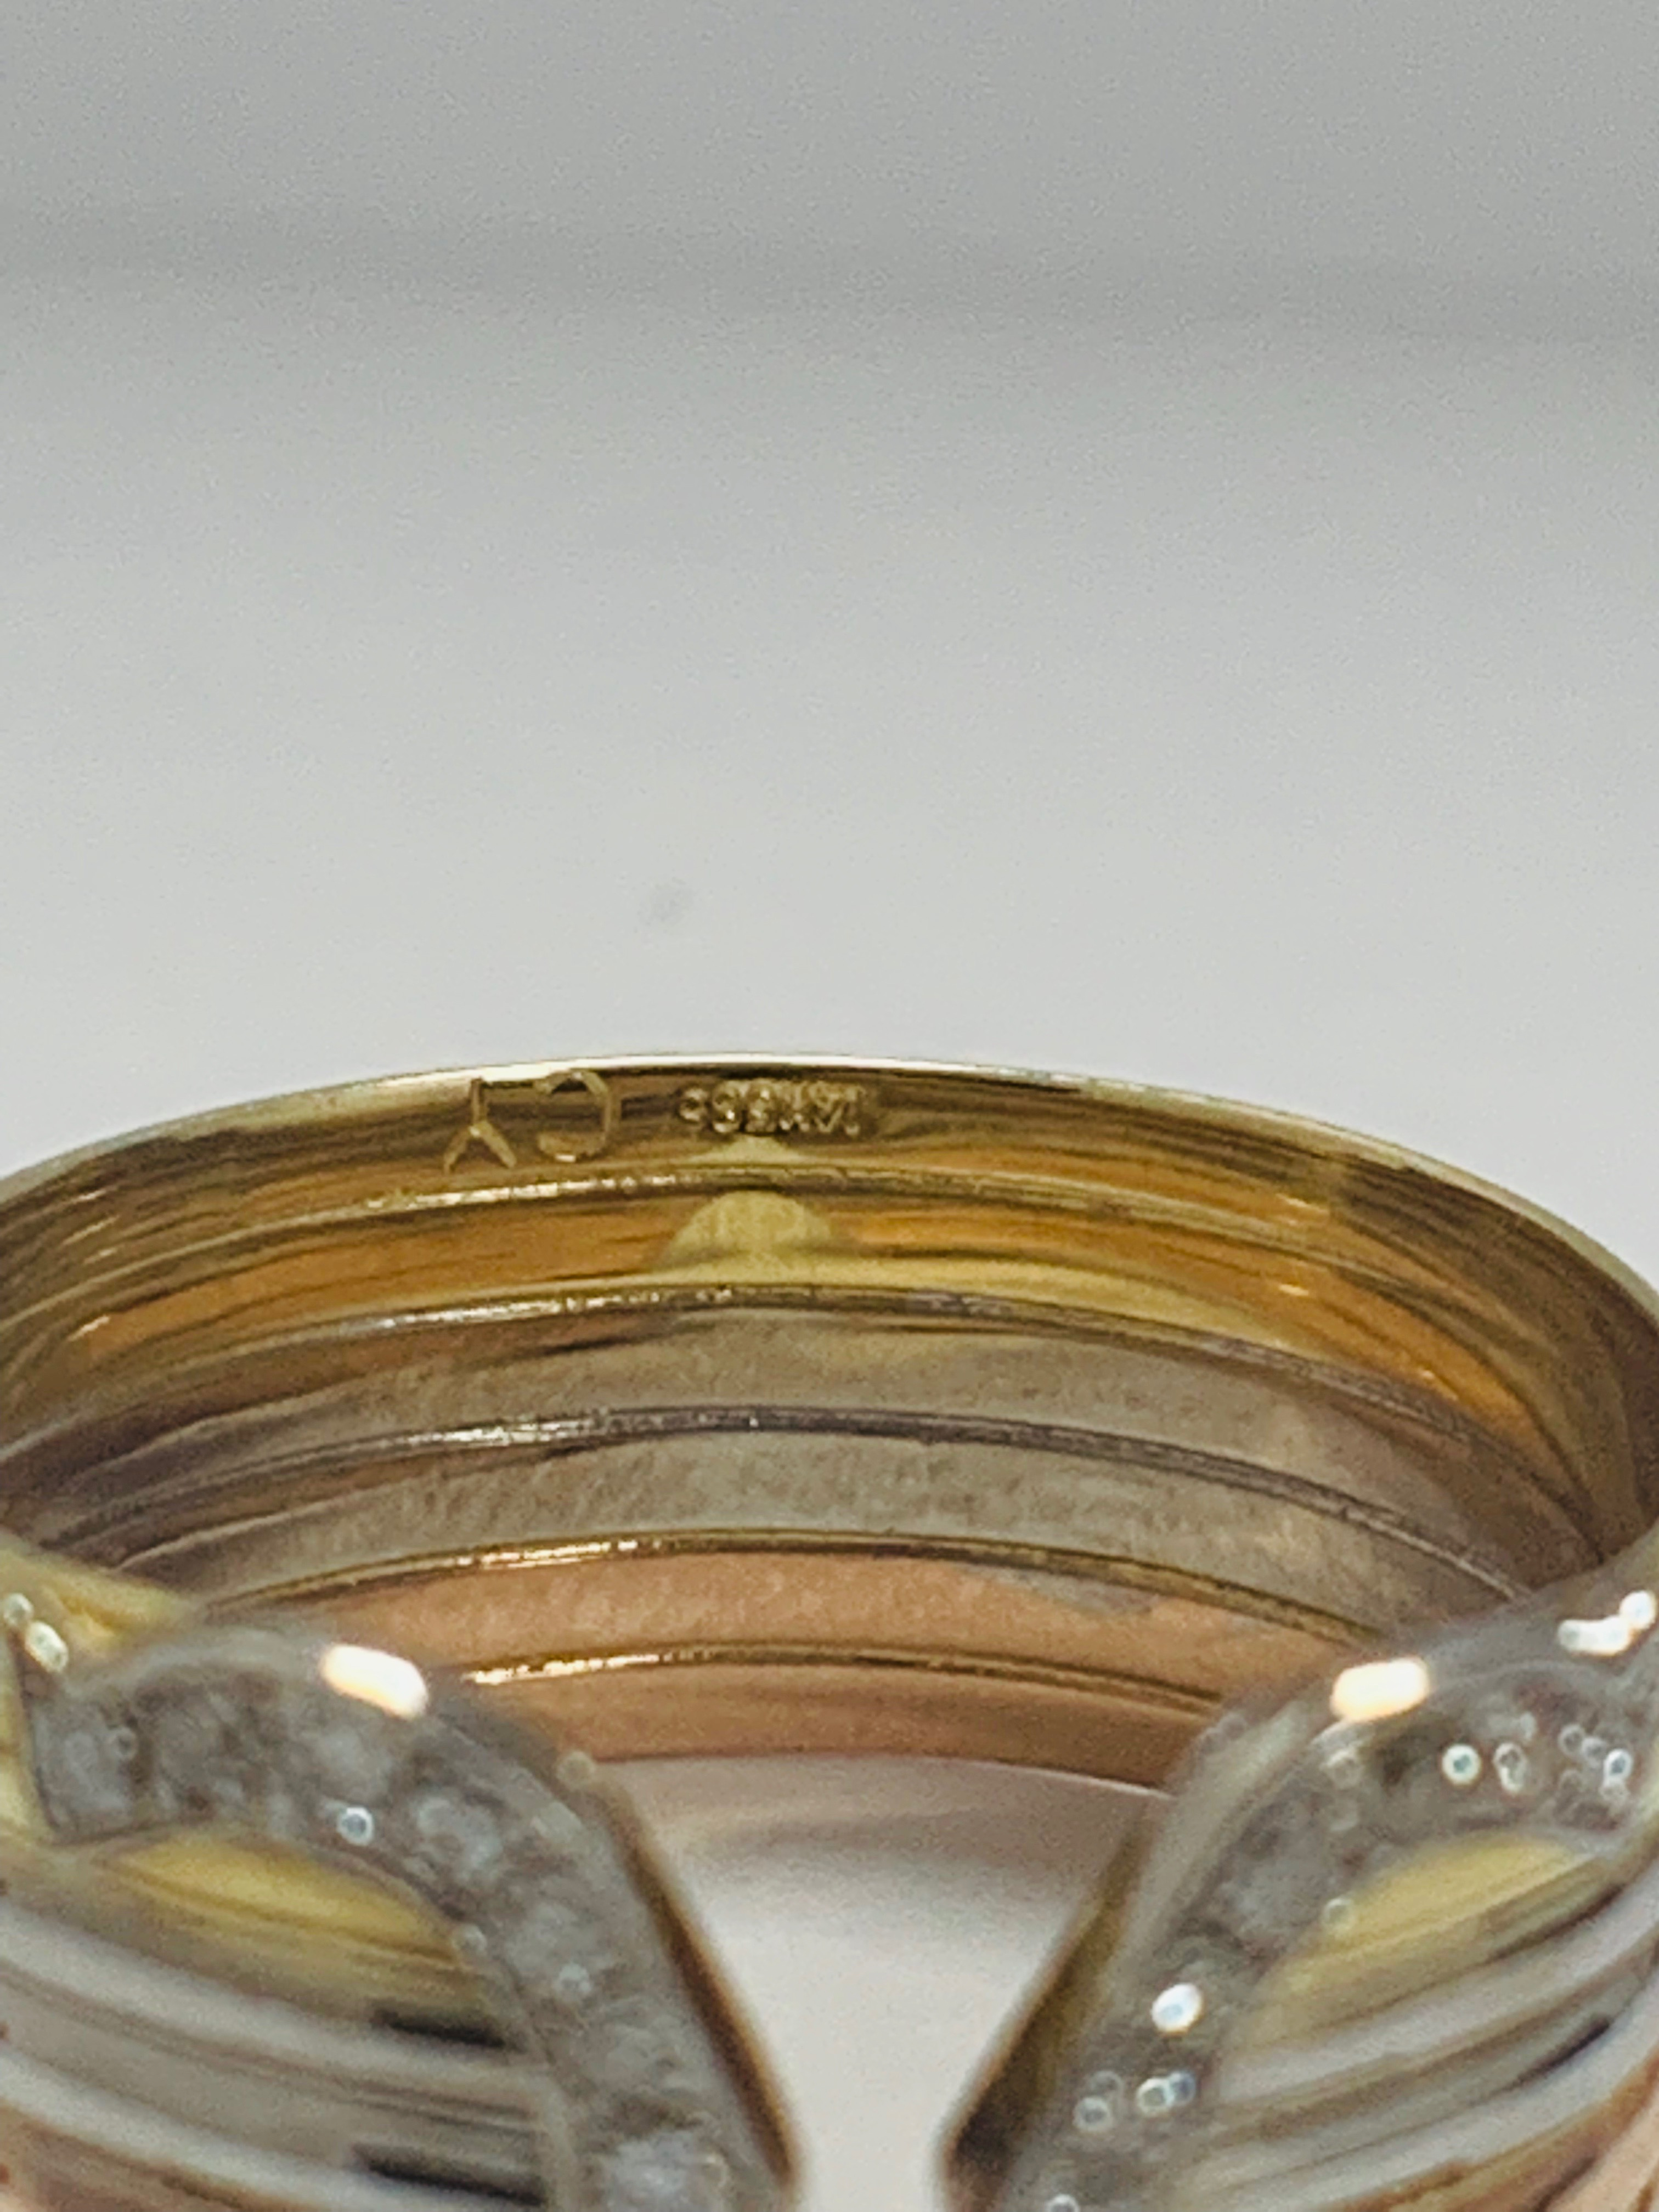 18ct 3 Toned Gold Diamond Chanel ring - Image 7 of 11